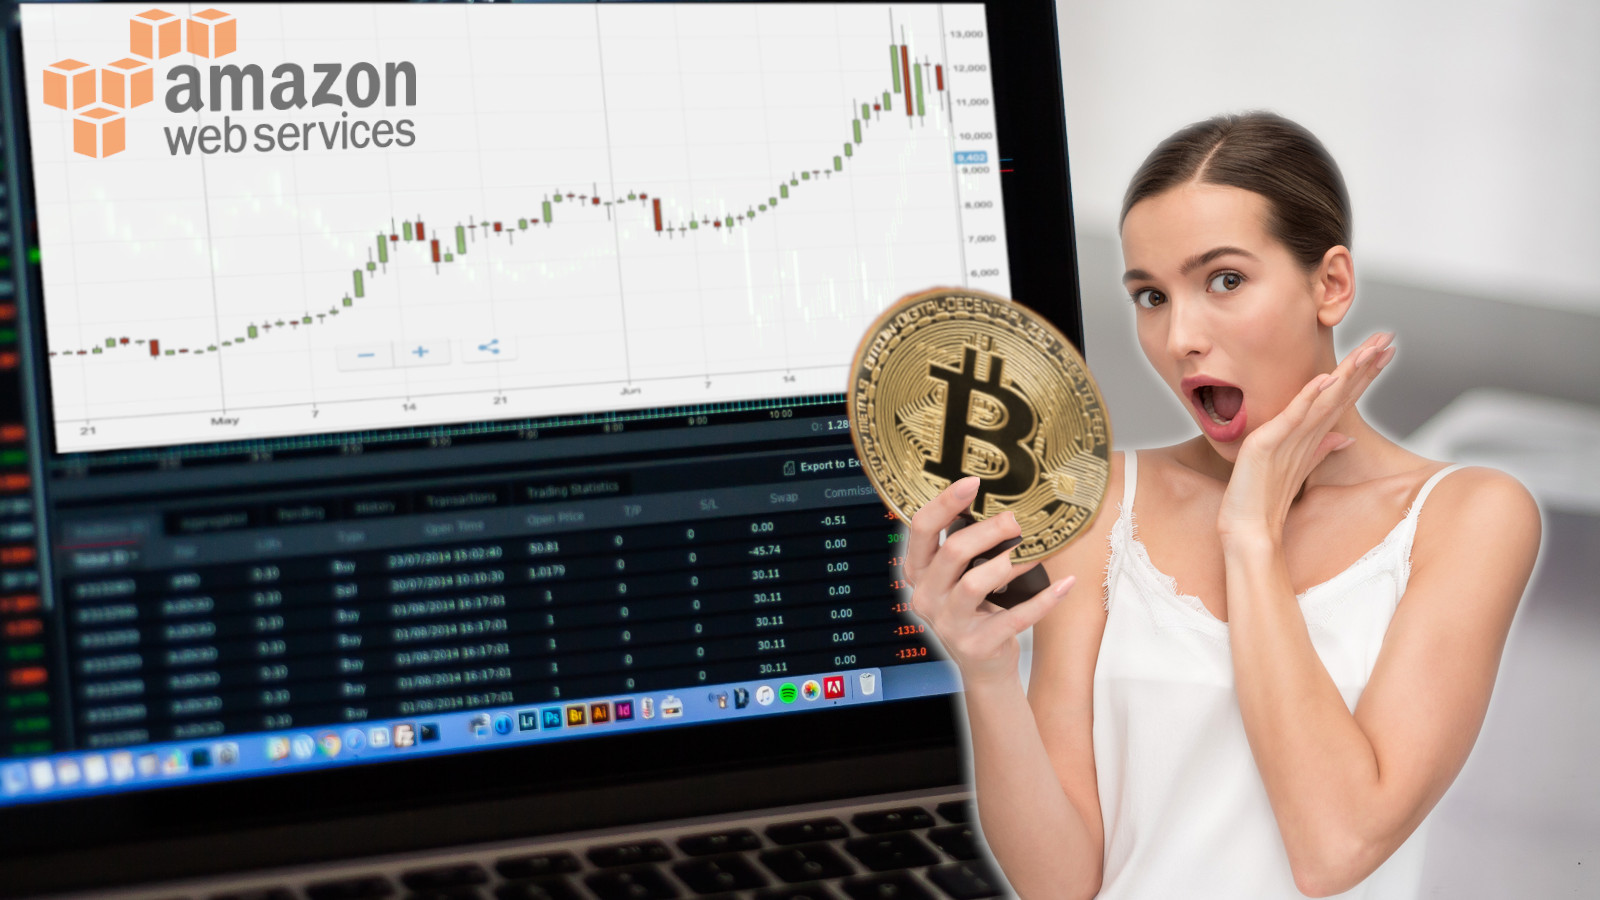 AWS issues are causing erratic cryptocurrency market data in Asia